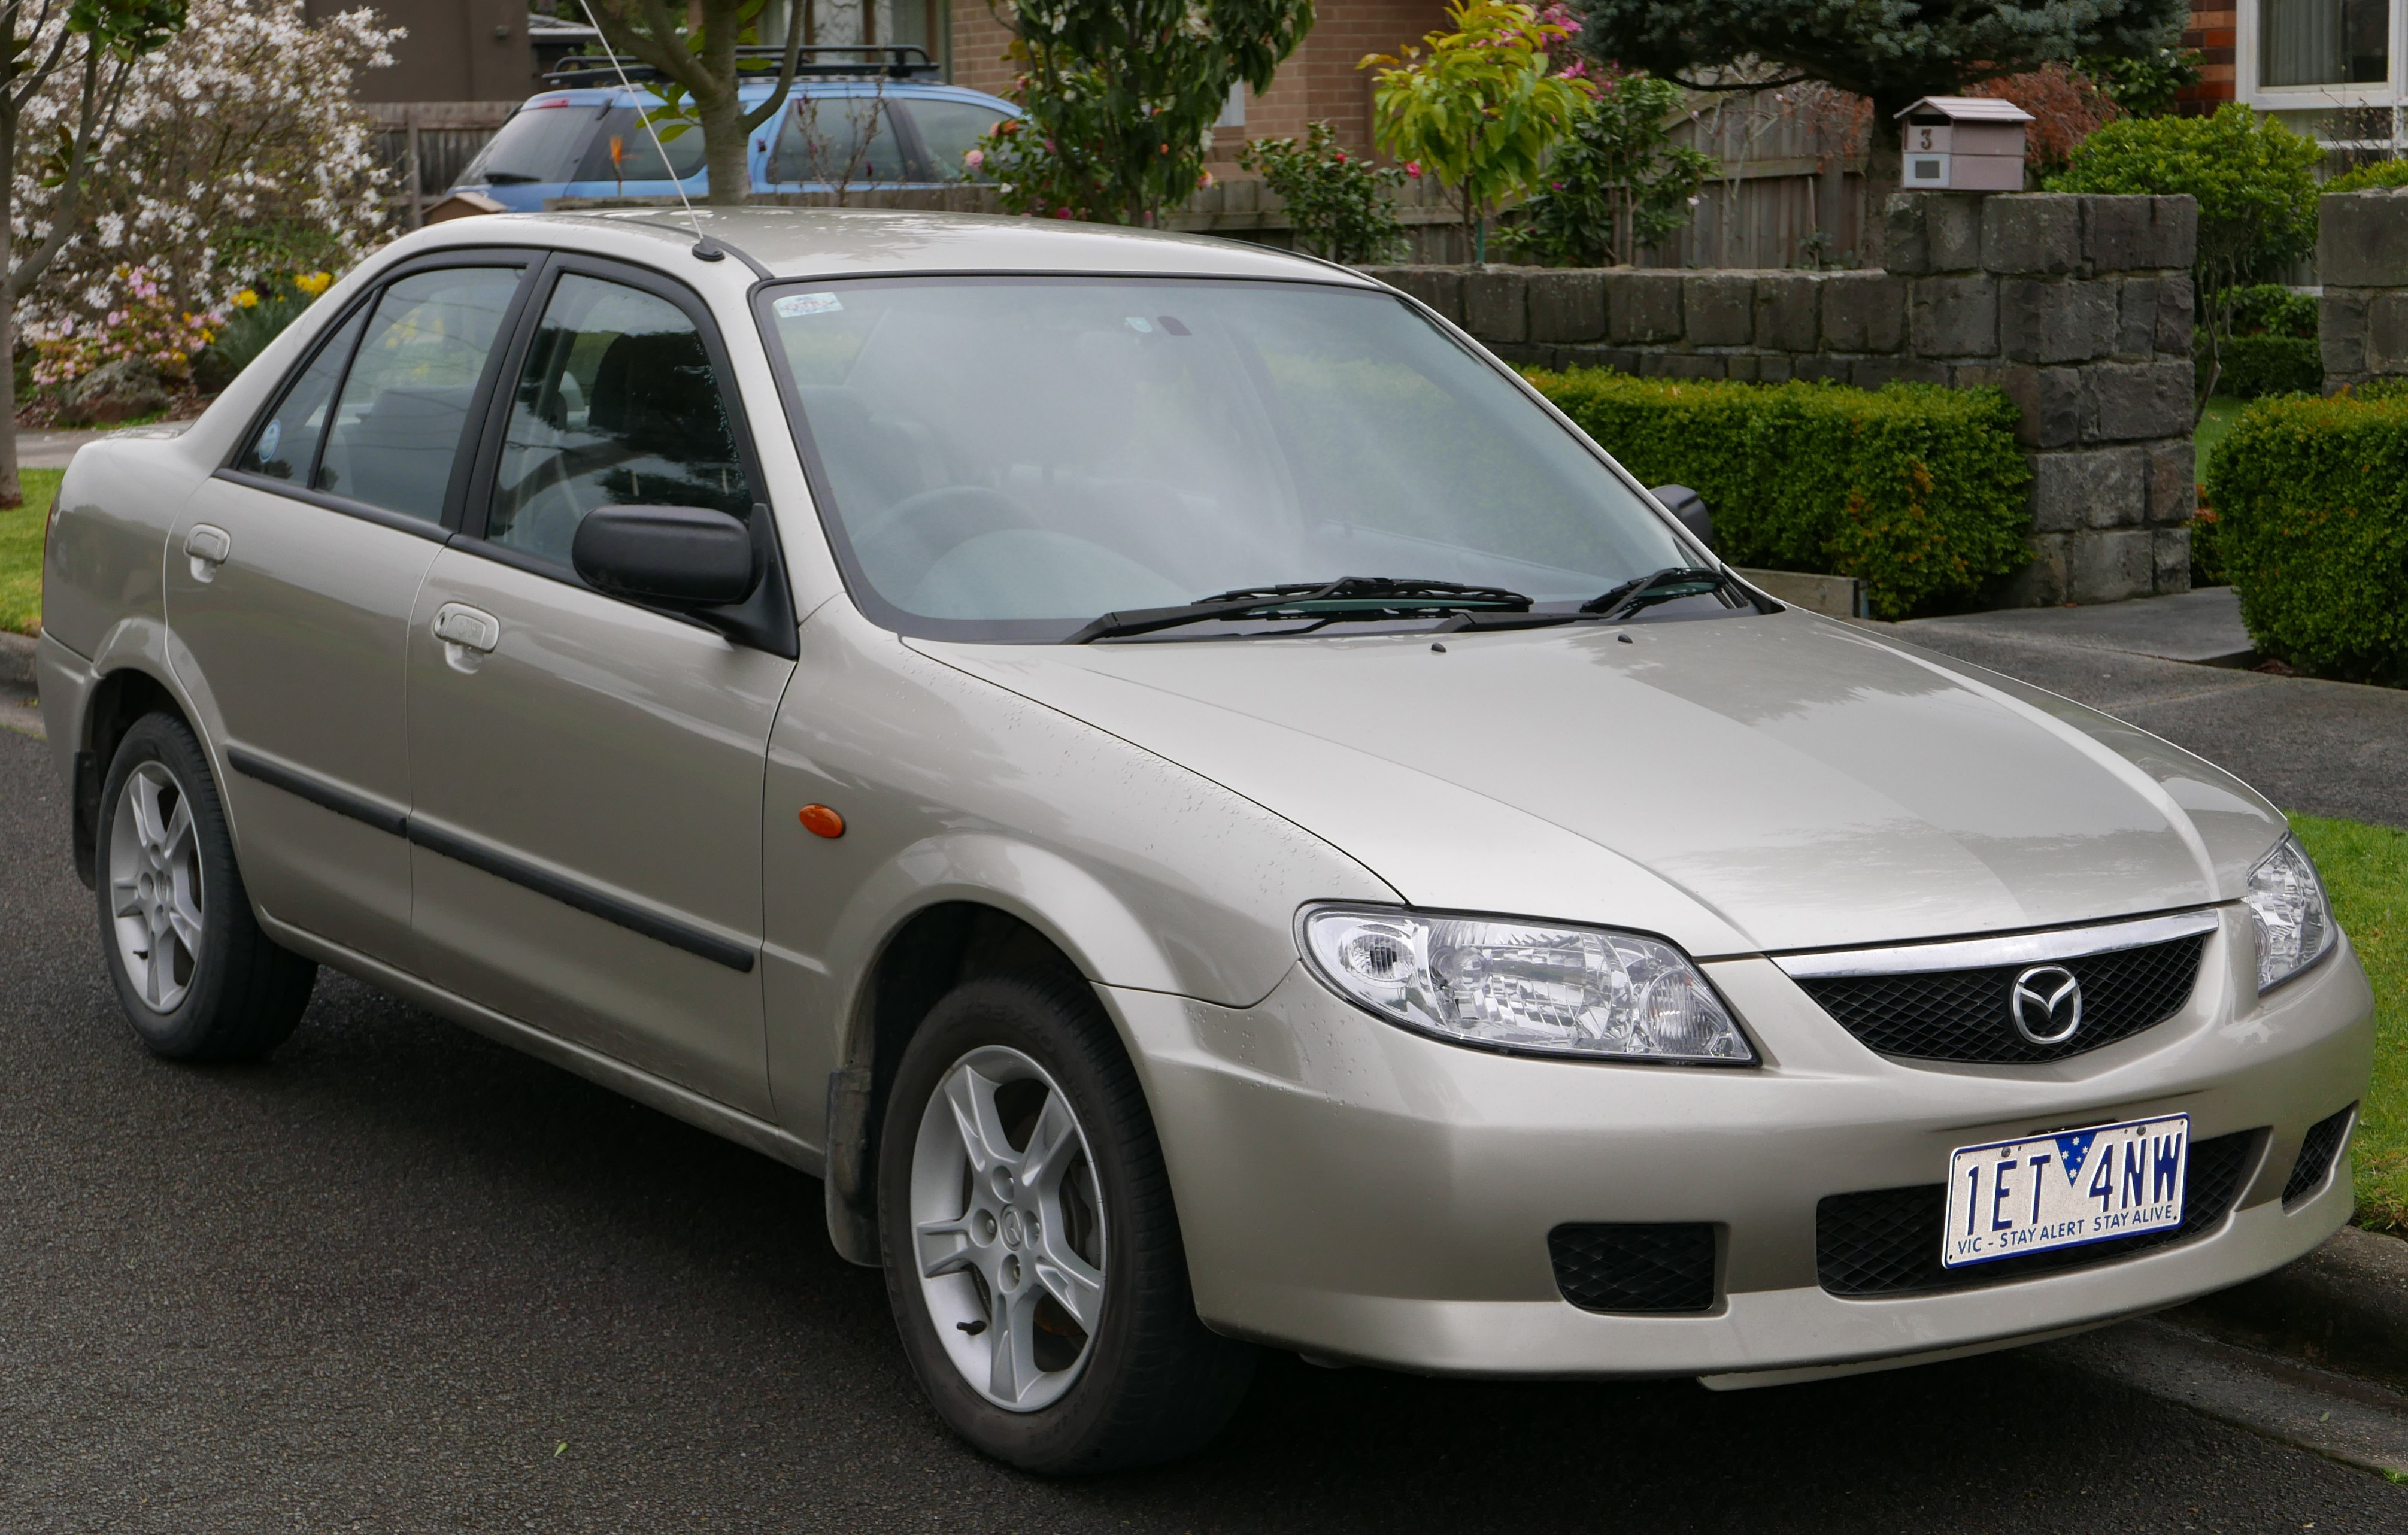 Mazda 323 - The complete information and online sale with